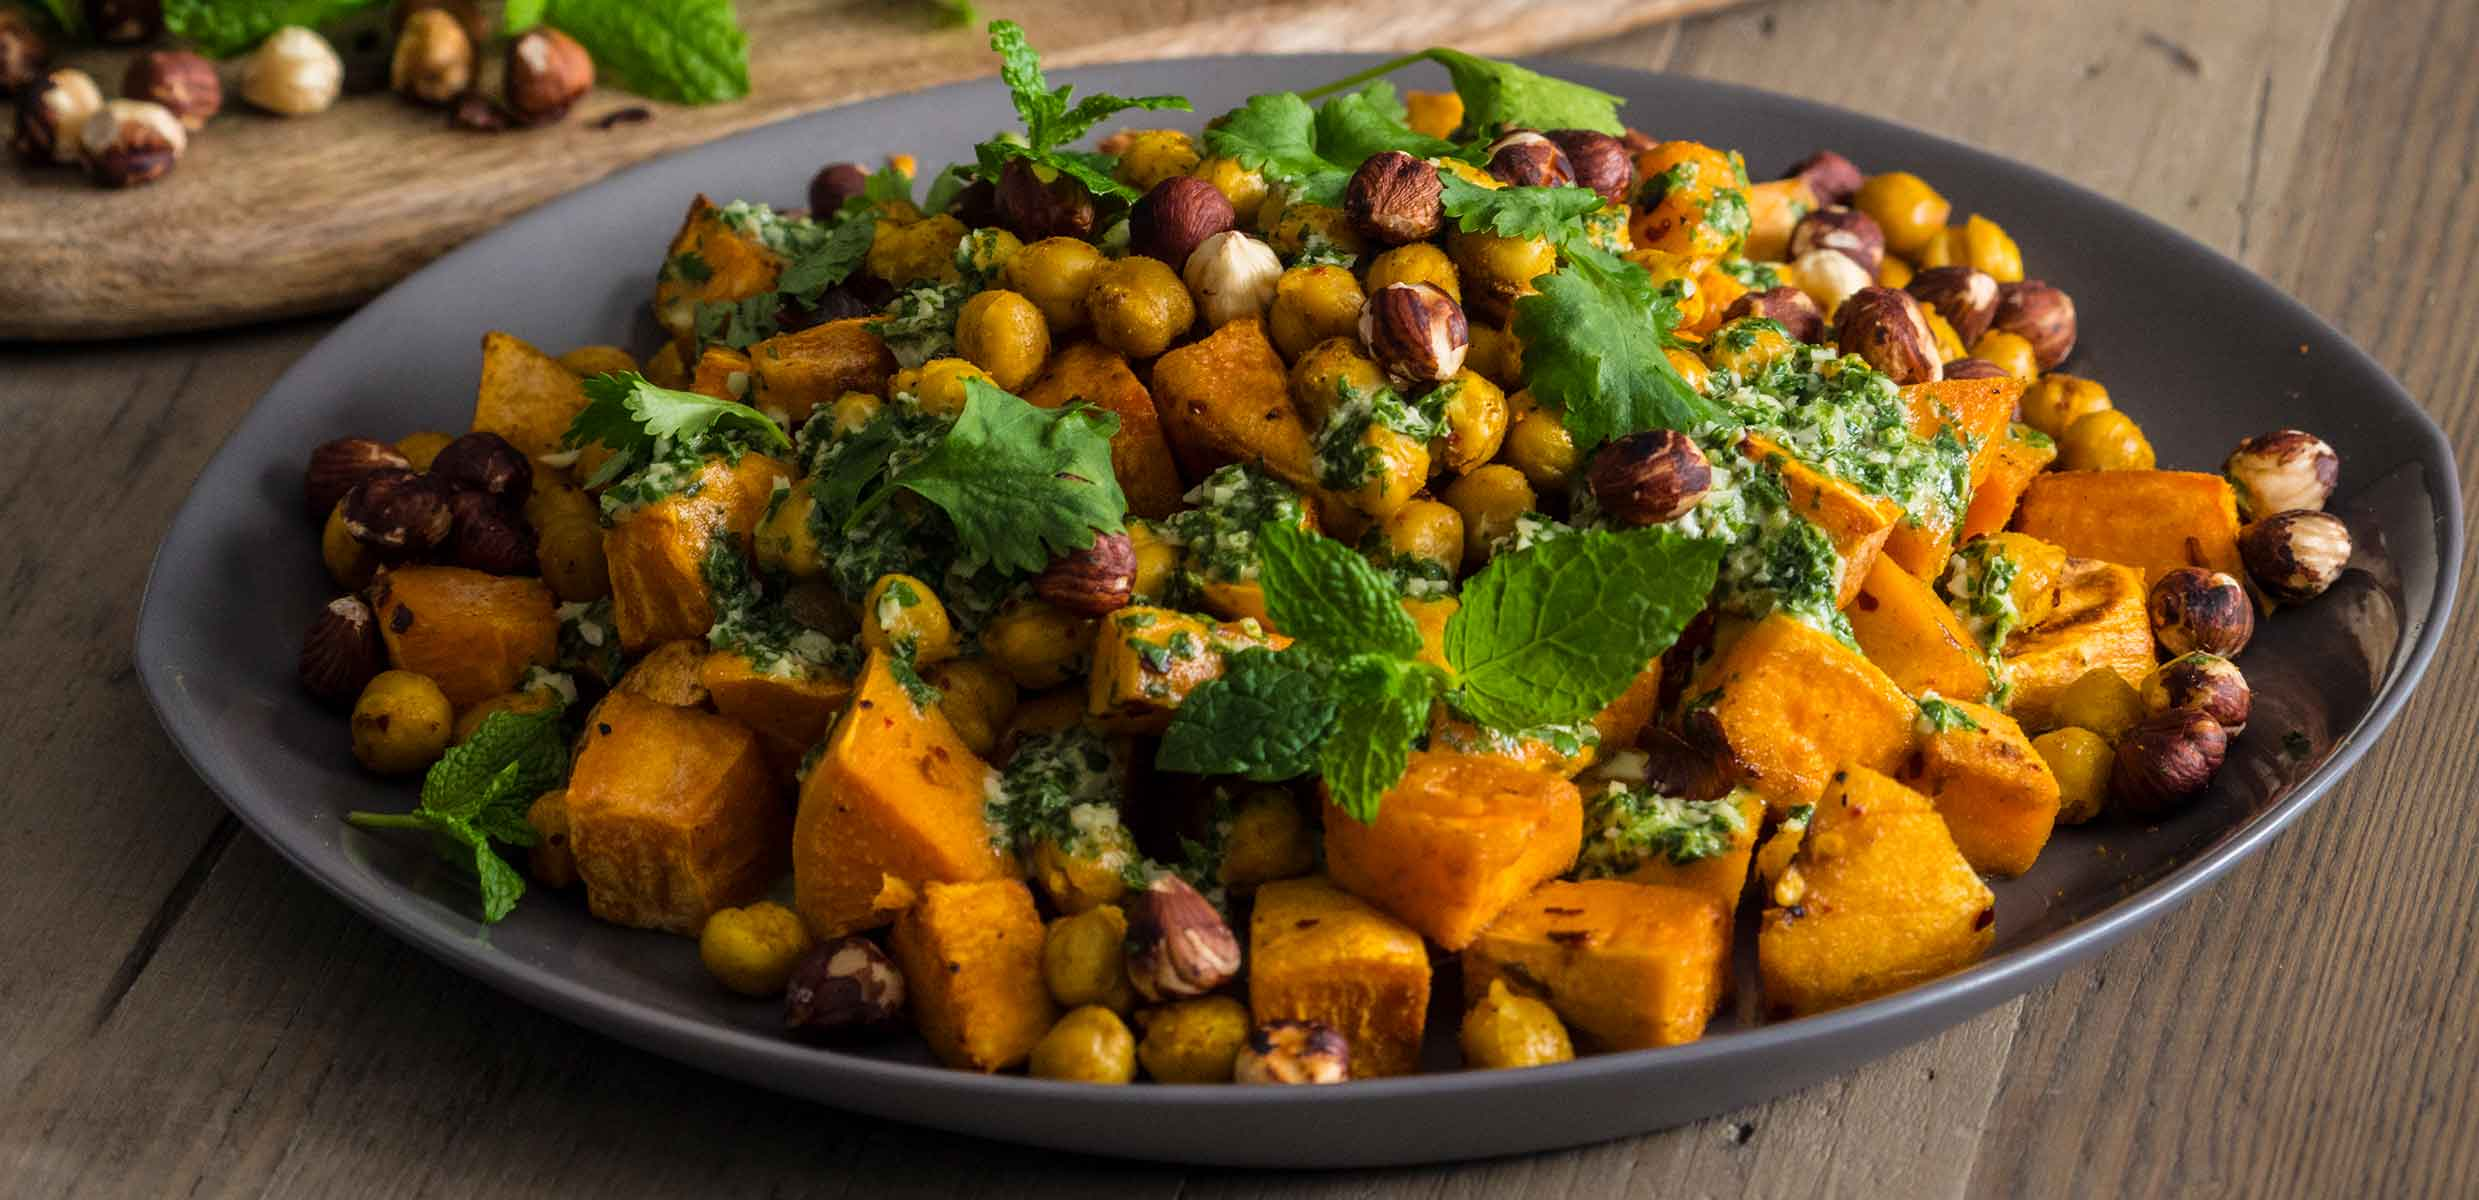 Photograph of Roast sweet potato with roast chickpeas & herby tahini dressing using Sweet Potatoes grown on the Barfoots SCL farm in Senegal